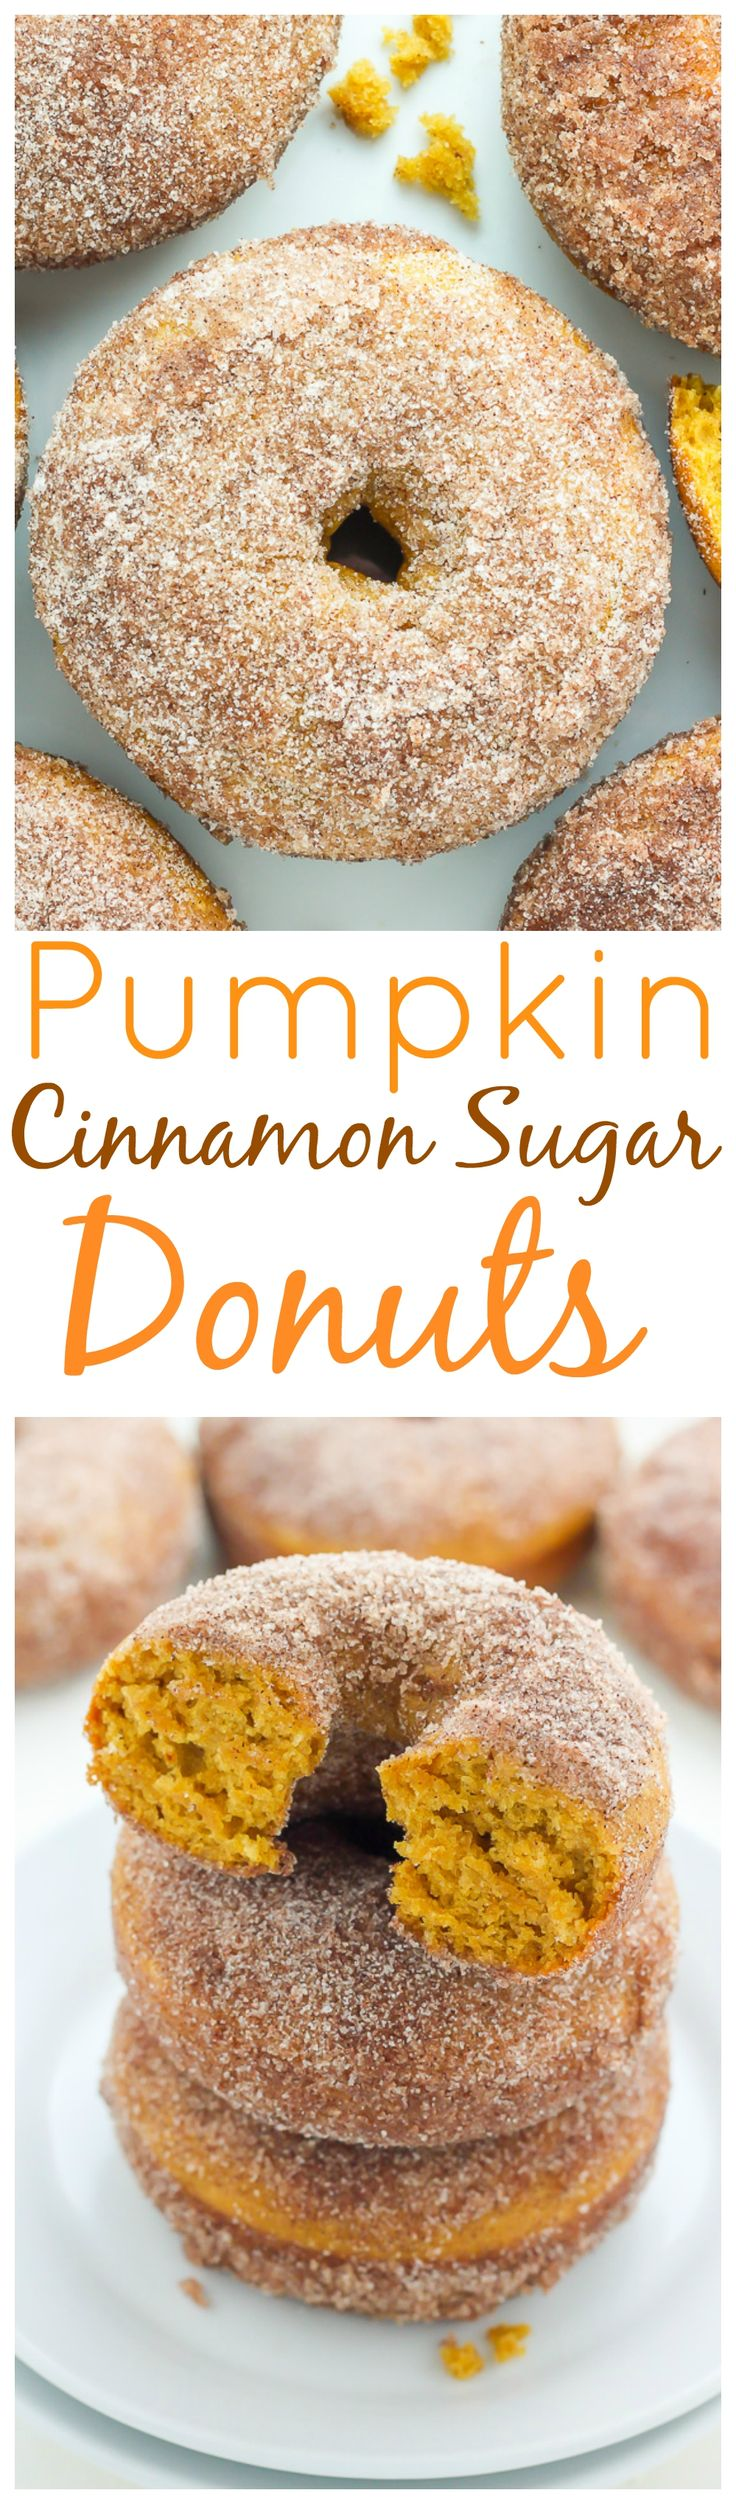 Pumpkin Cinnamon Sugar Donuts - super soft, fluffy, and loaded with pumpkin…